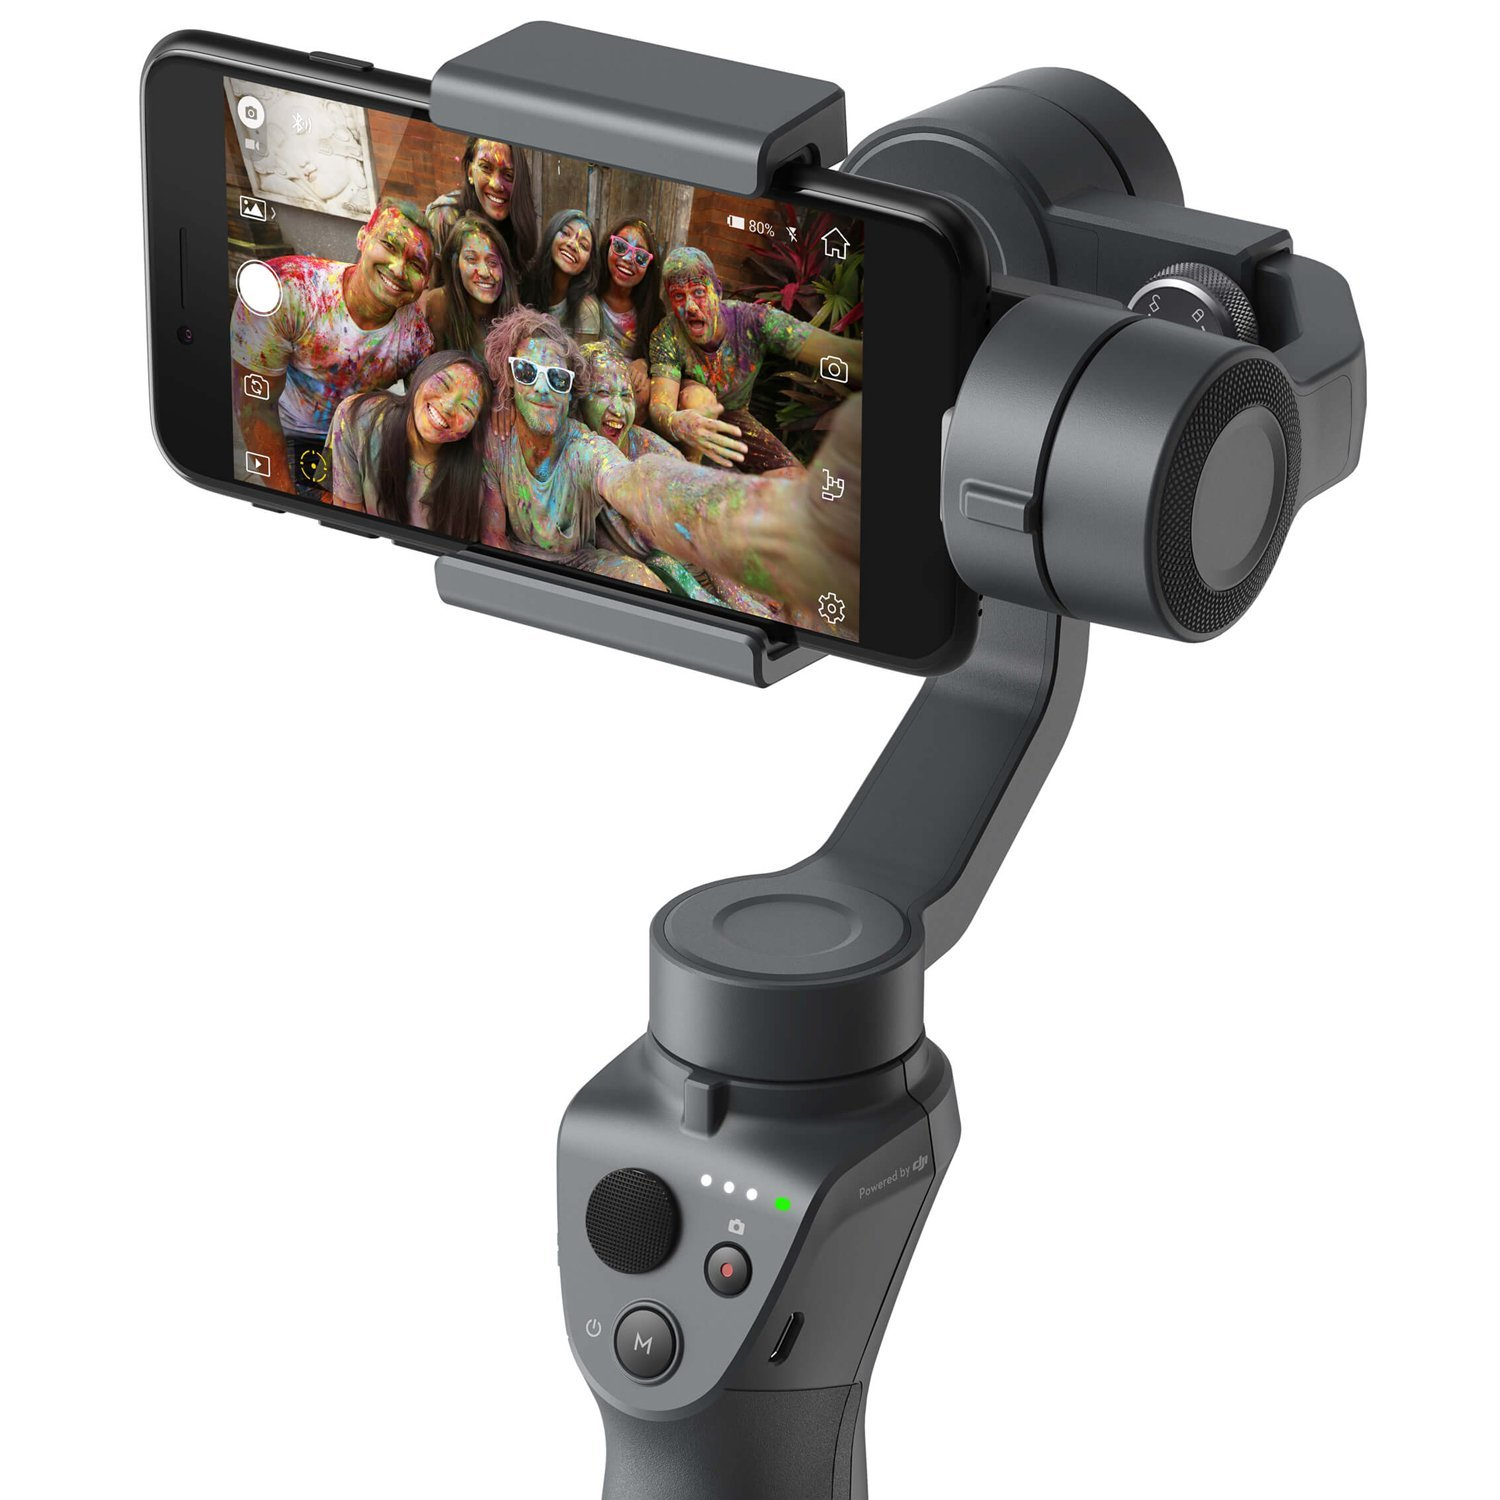 Best iPhone camera accessories- DJI Osmo Mobile 2